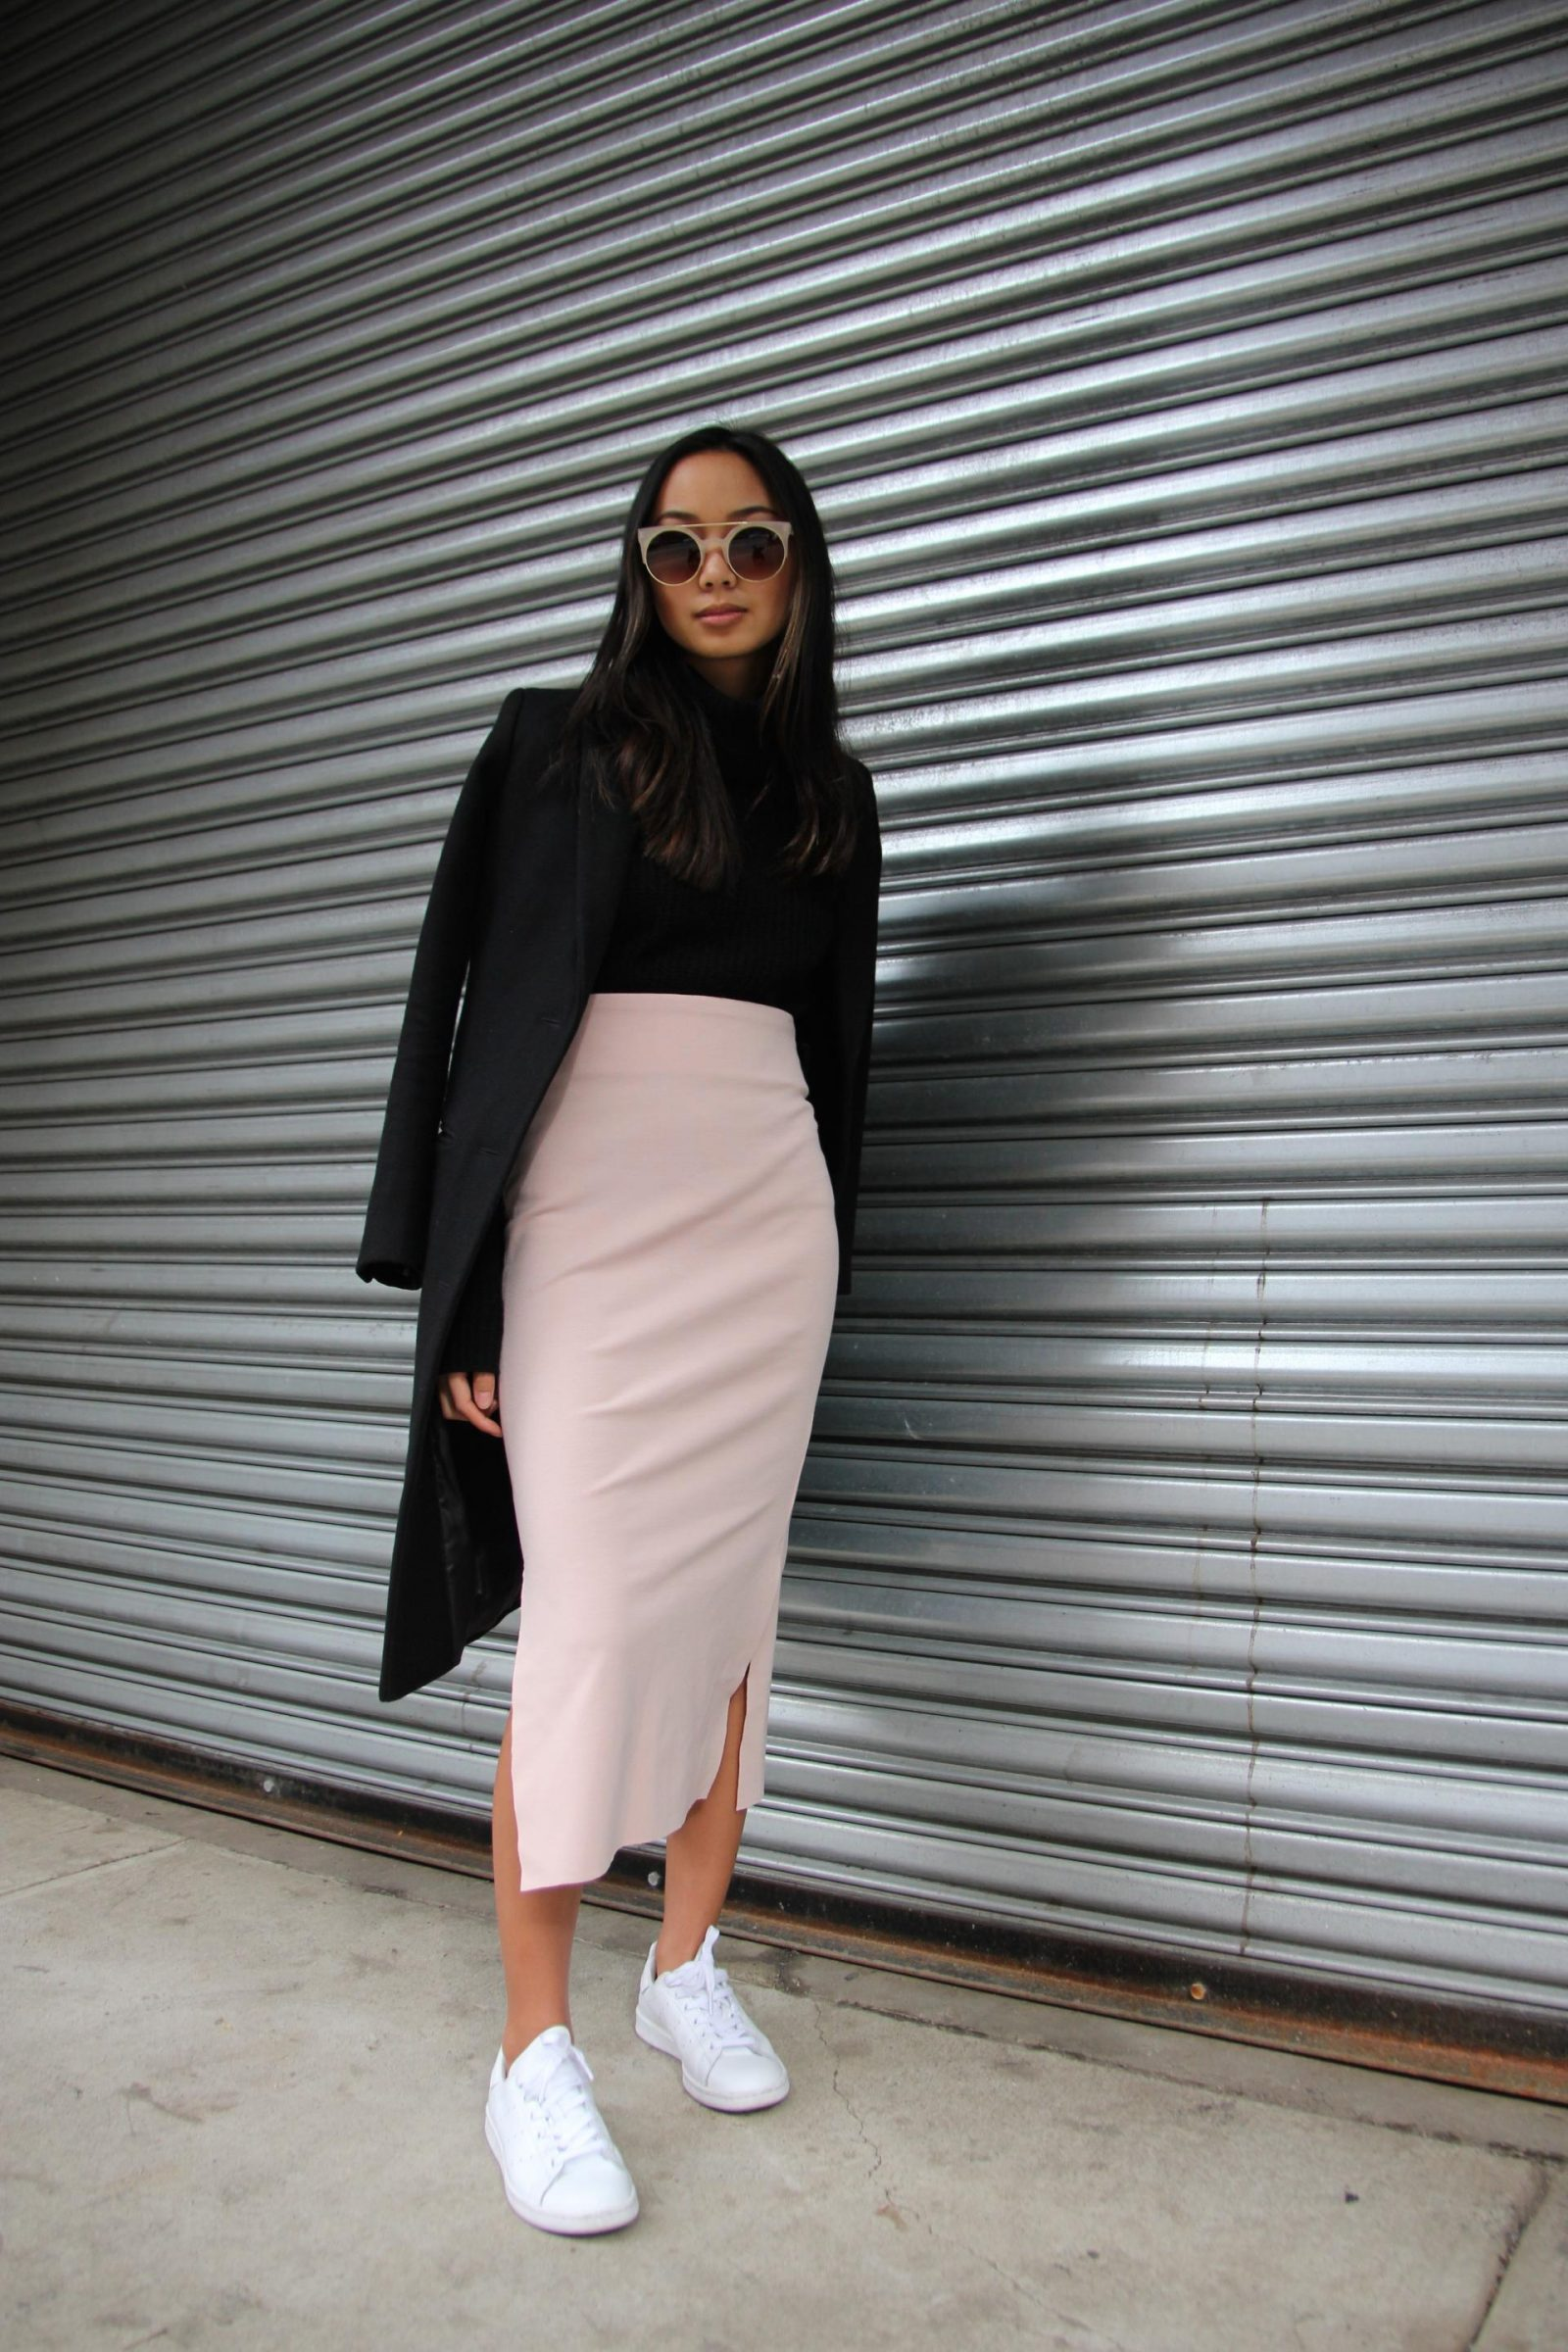 There's something inherently gorgeous about blush and black that we had to share this ensemble by Linh Niller Huynh! The color combo is powerful yet feminine and a pair of Keds-style sneaks, a calf-length pencil skirt and a gorgeous coat can go a long way when you're planning fresh spring outfits! Skirt: Sara Jane Knapp, Top: 360cashmere, Coat: J.Crew, Shoes: Stan Smiths